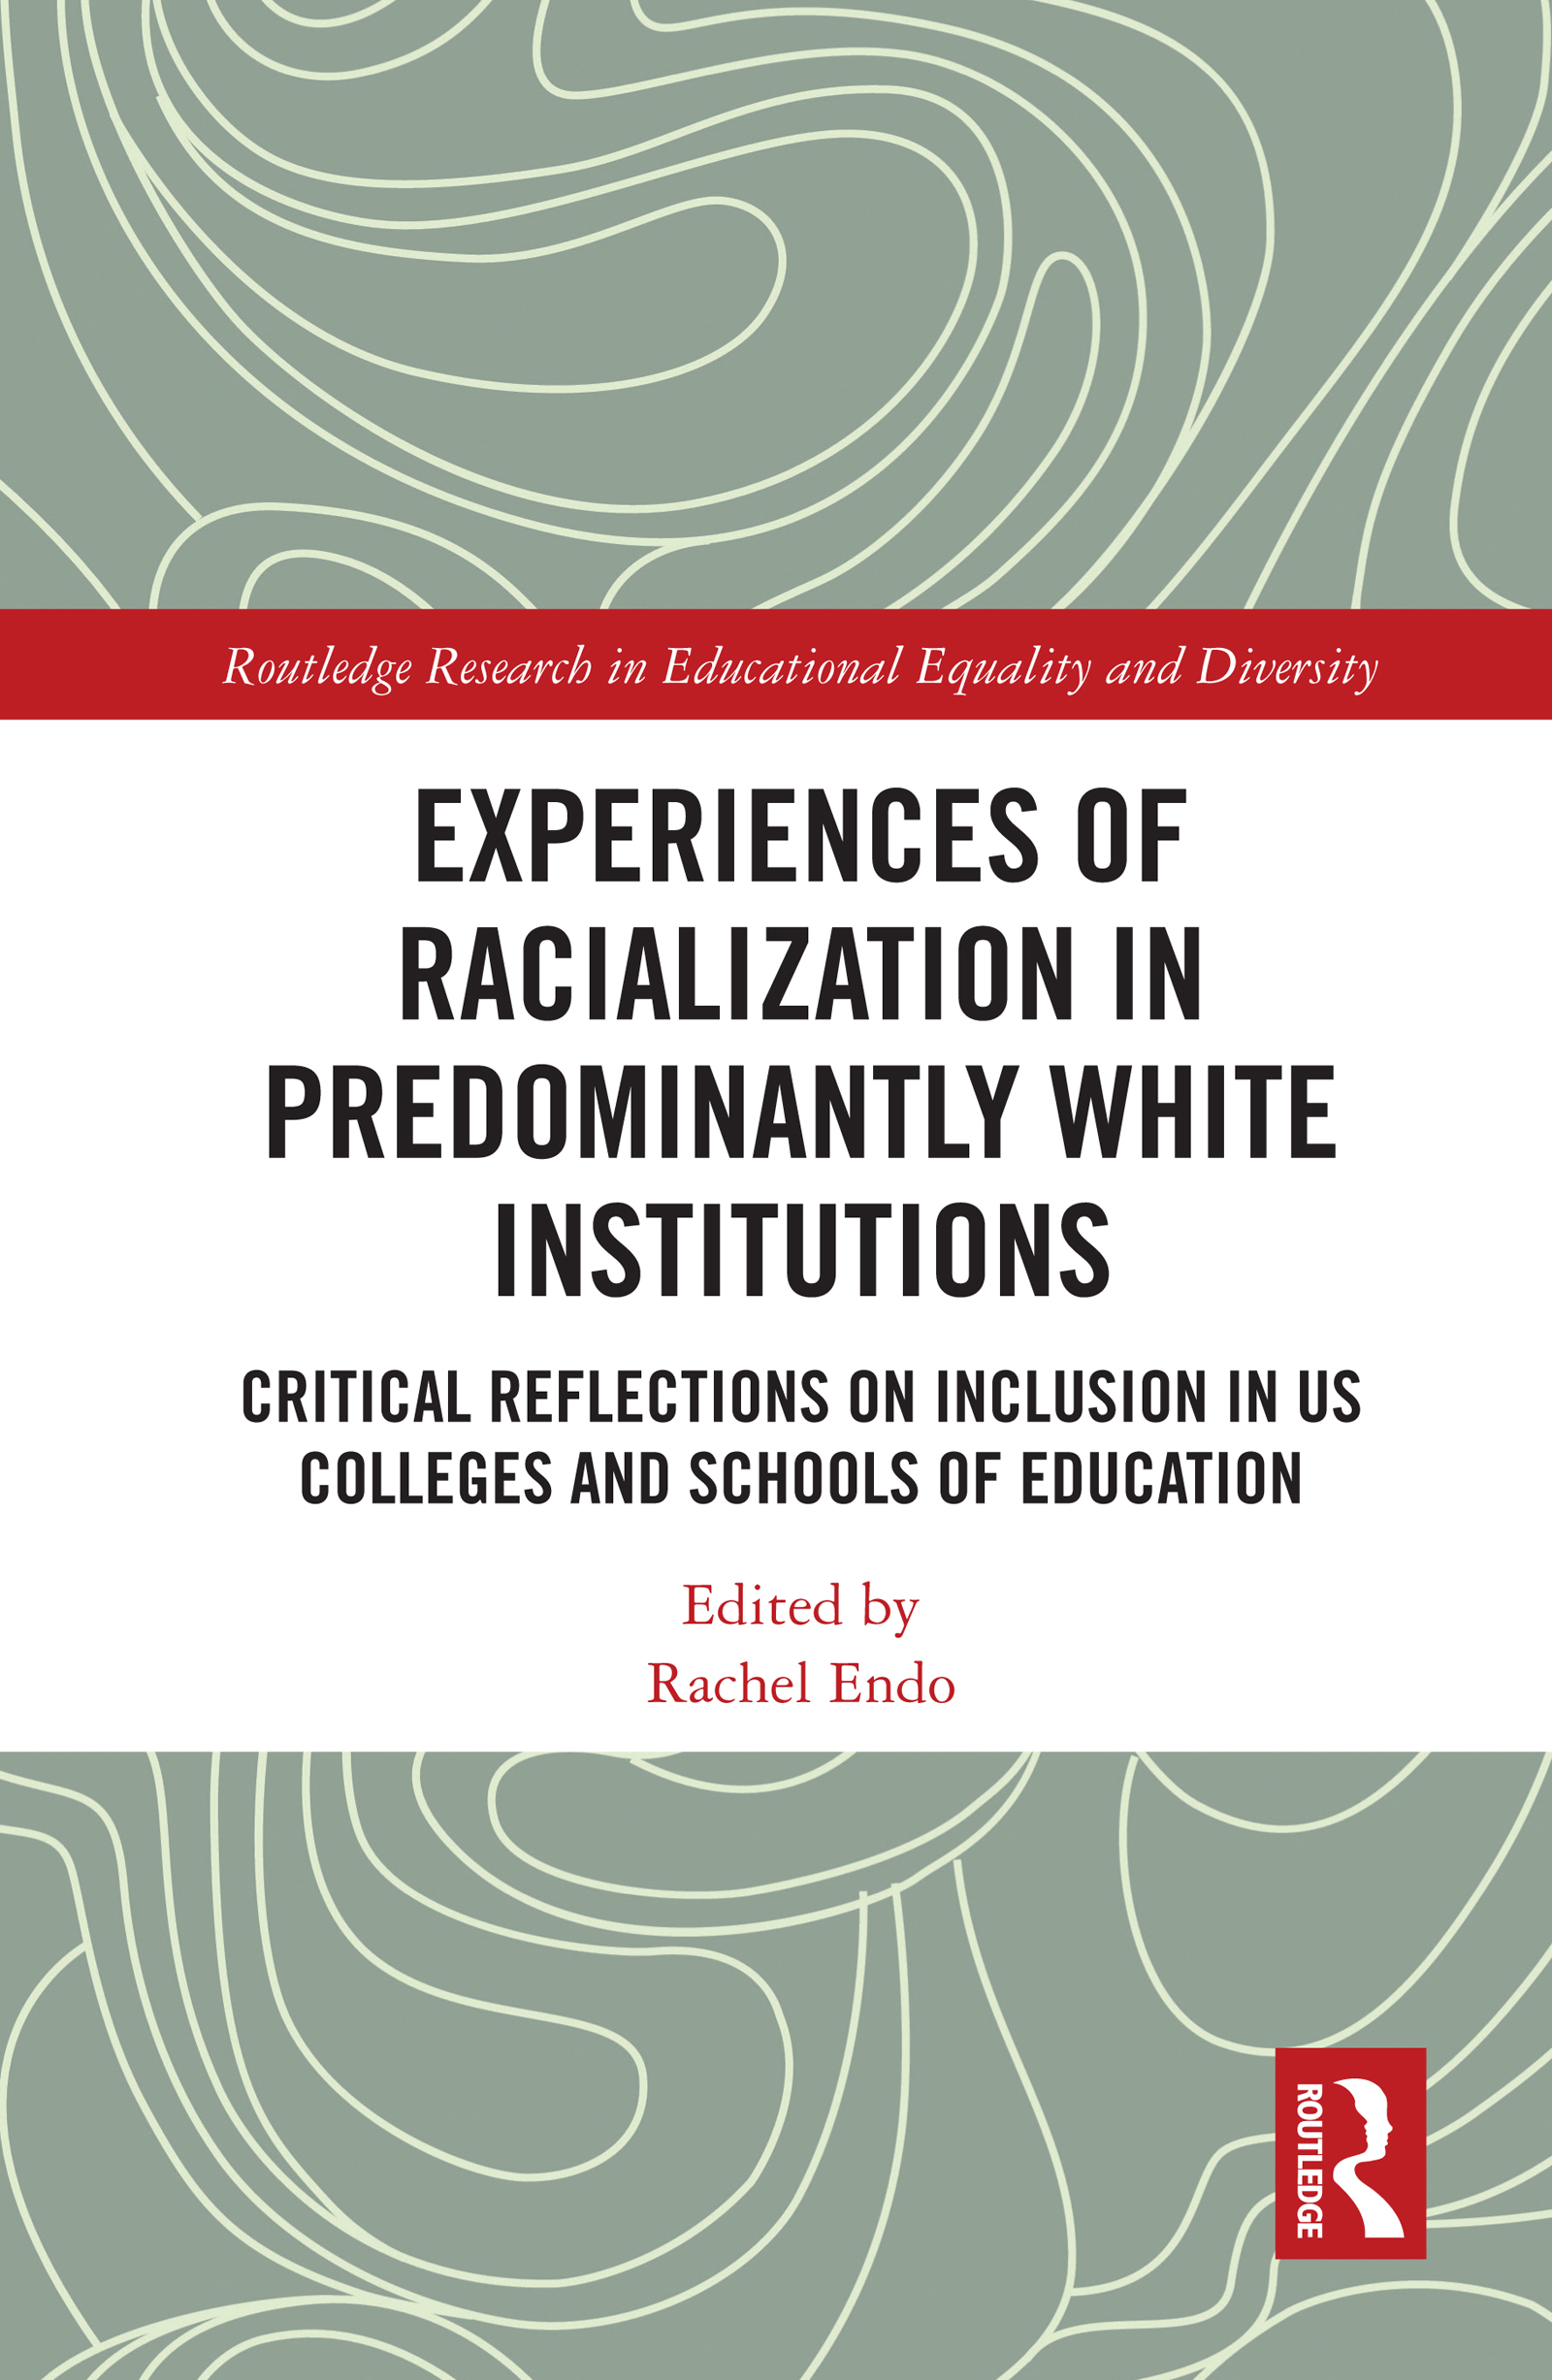 Experiences of Racialization in Predominantly White Institutions